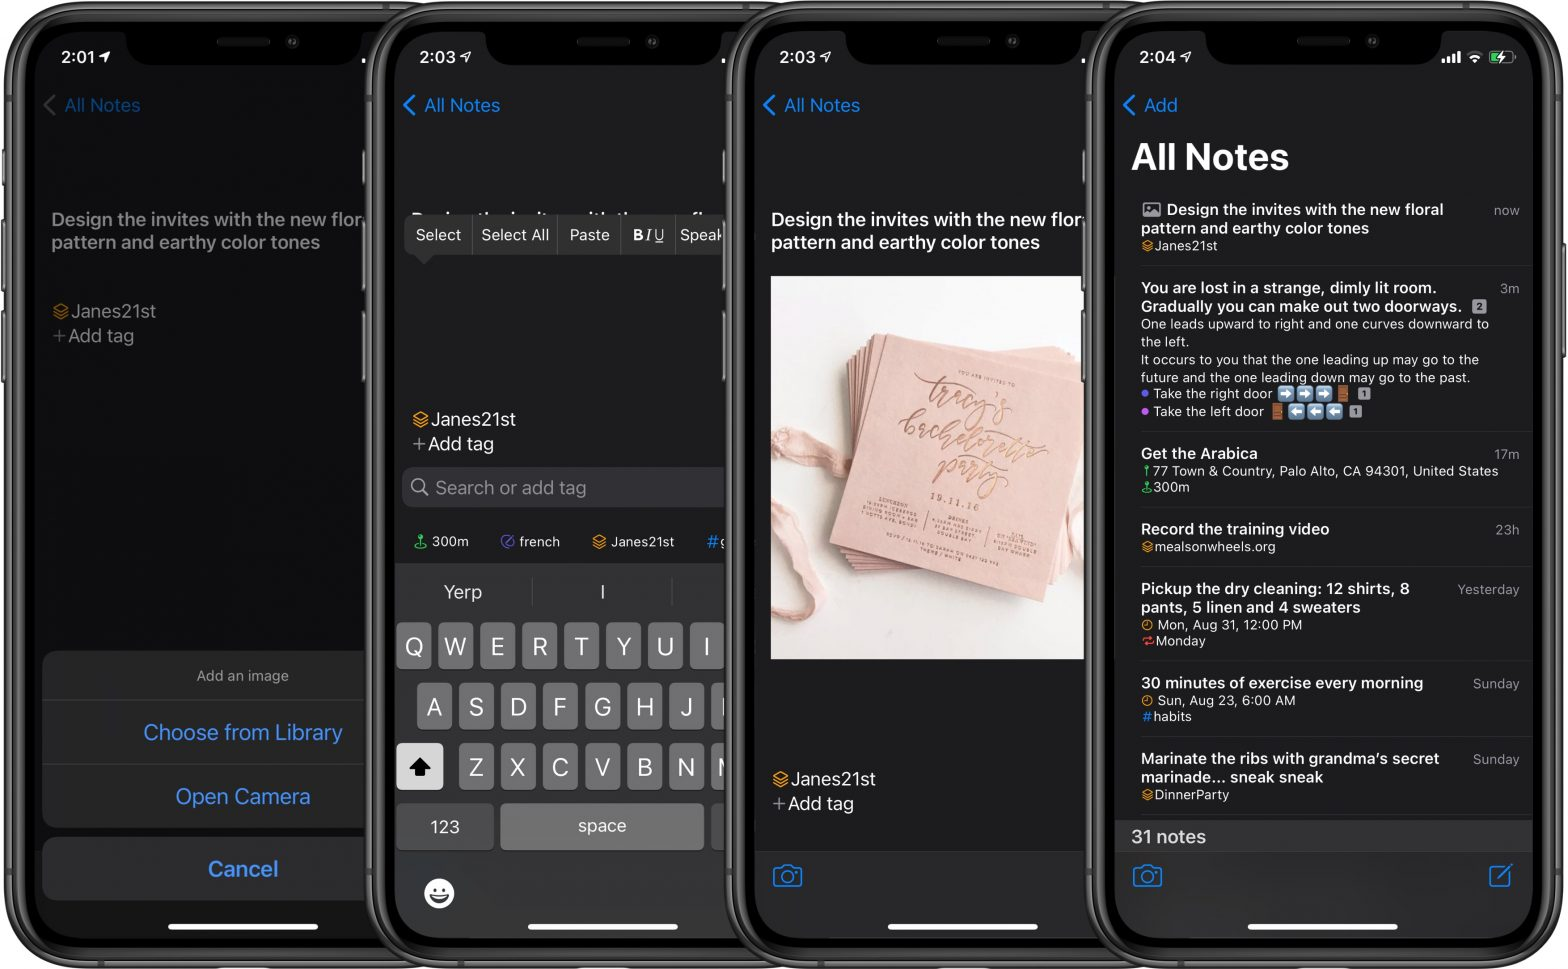 North Notes - How to add images to your notes